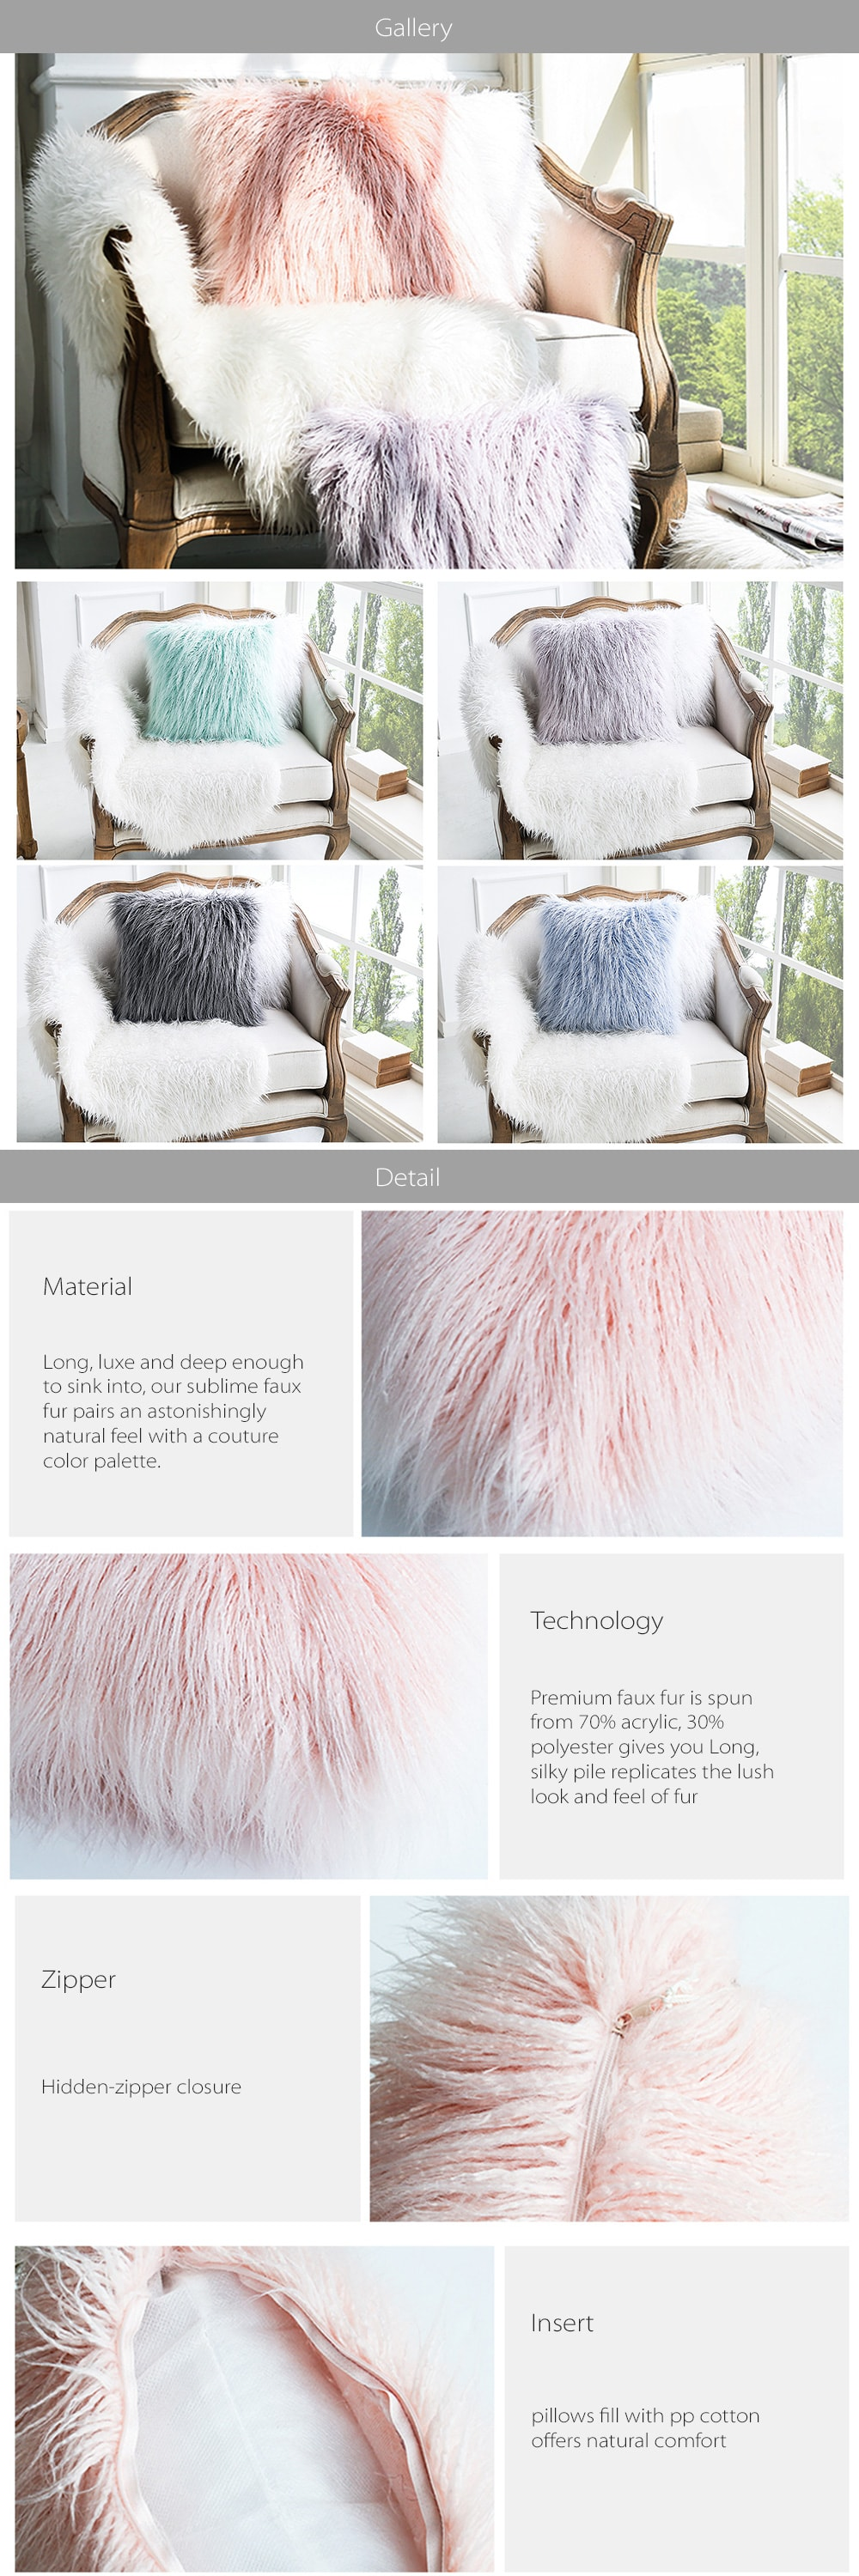 bed cushions covers white pillow of long black throw full large size light pillows pink mongolian blue faux fur fuzzy round gray cushion